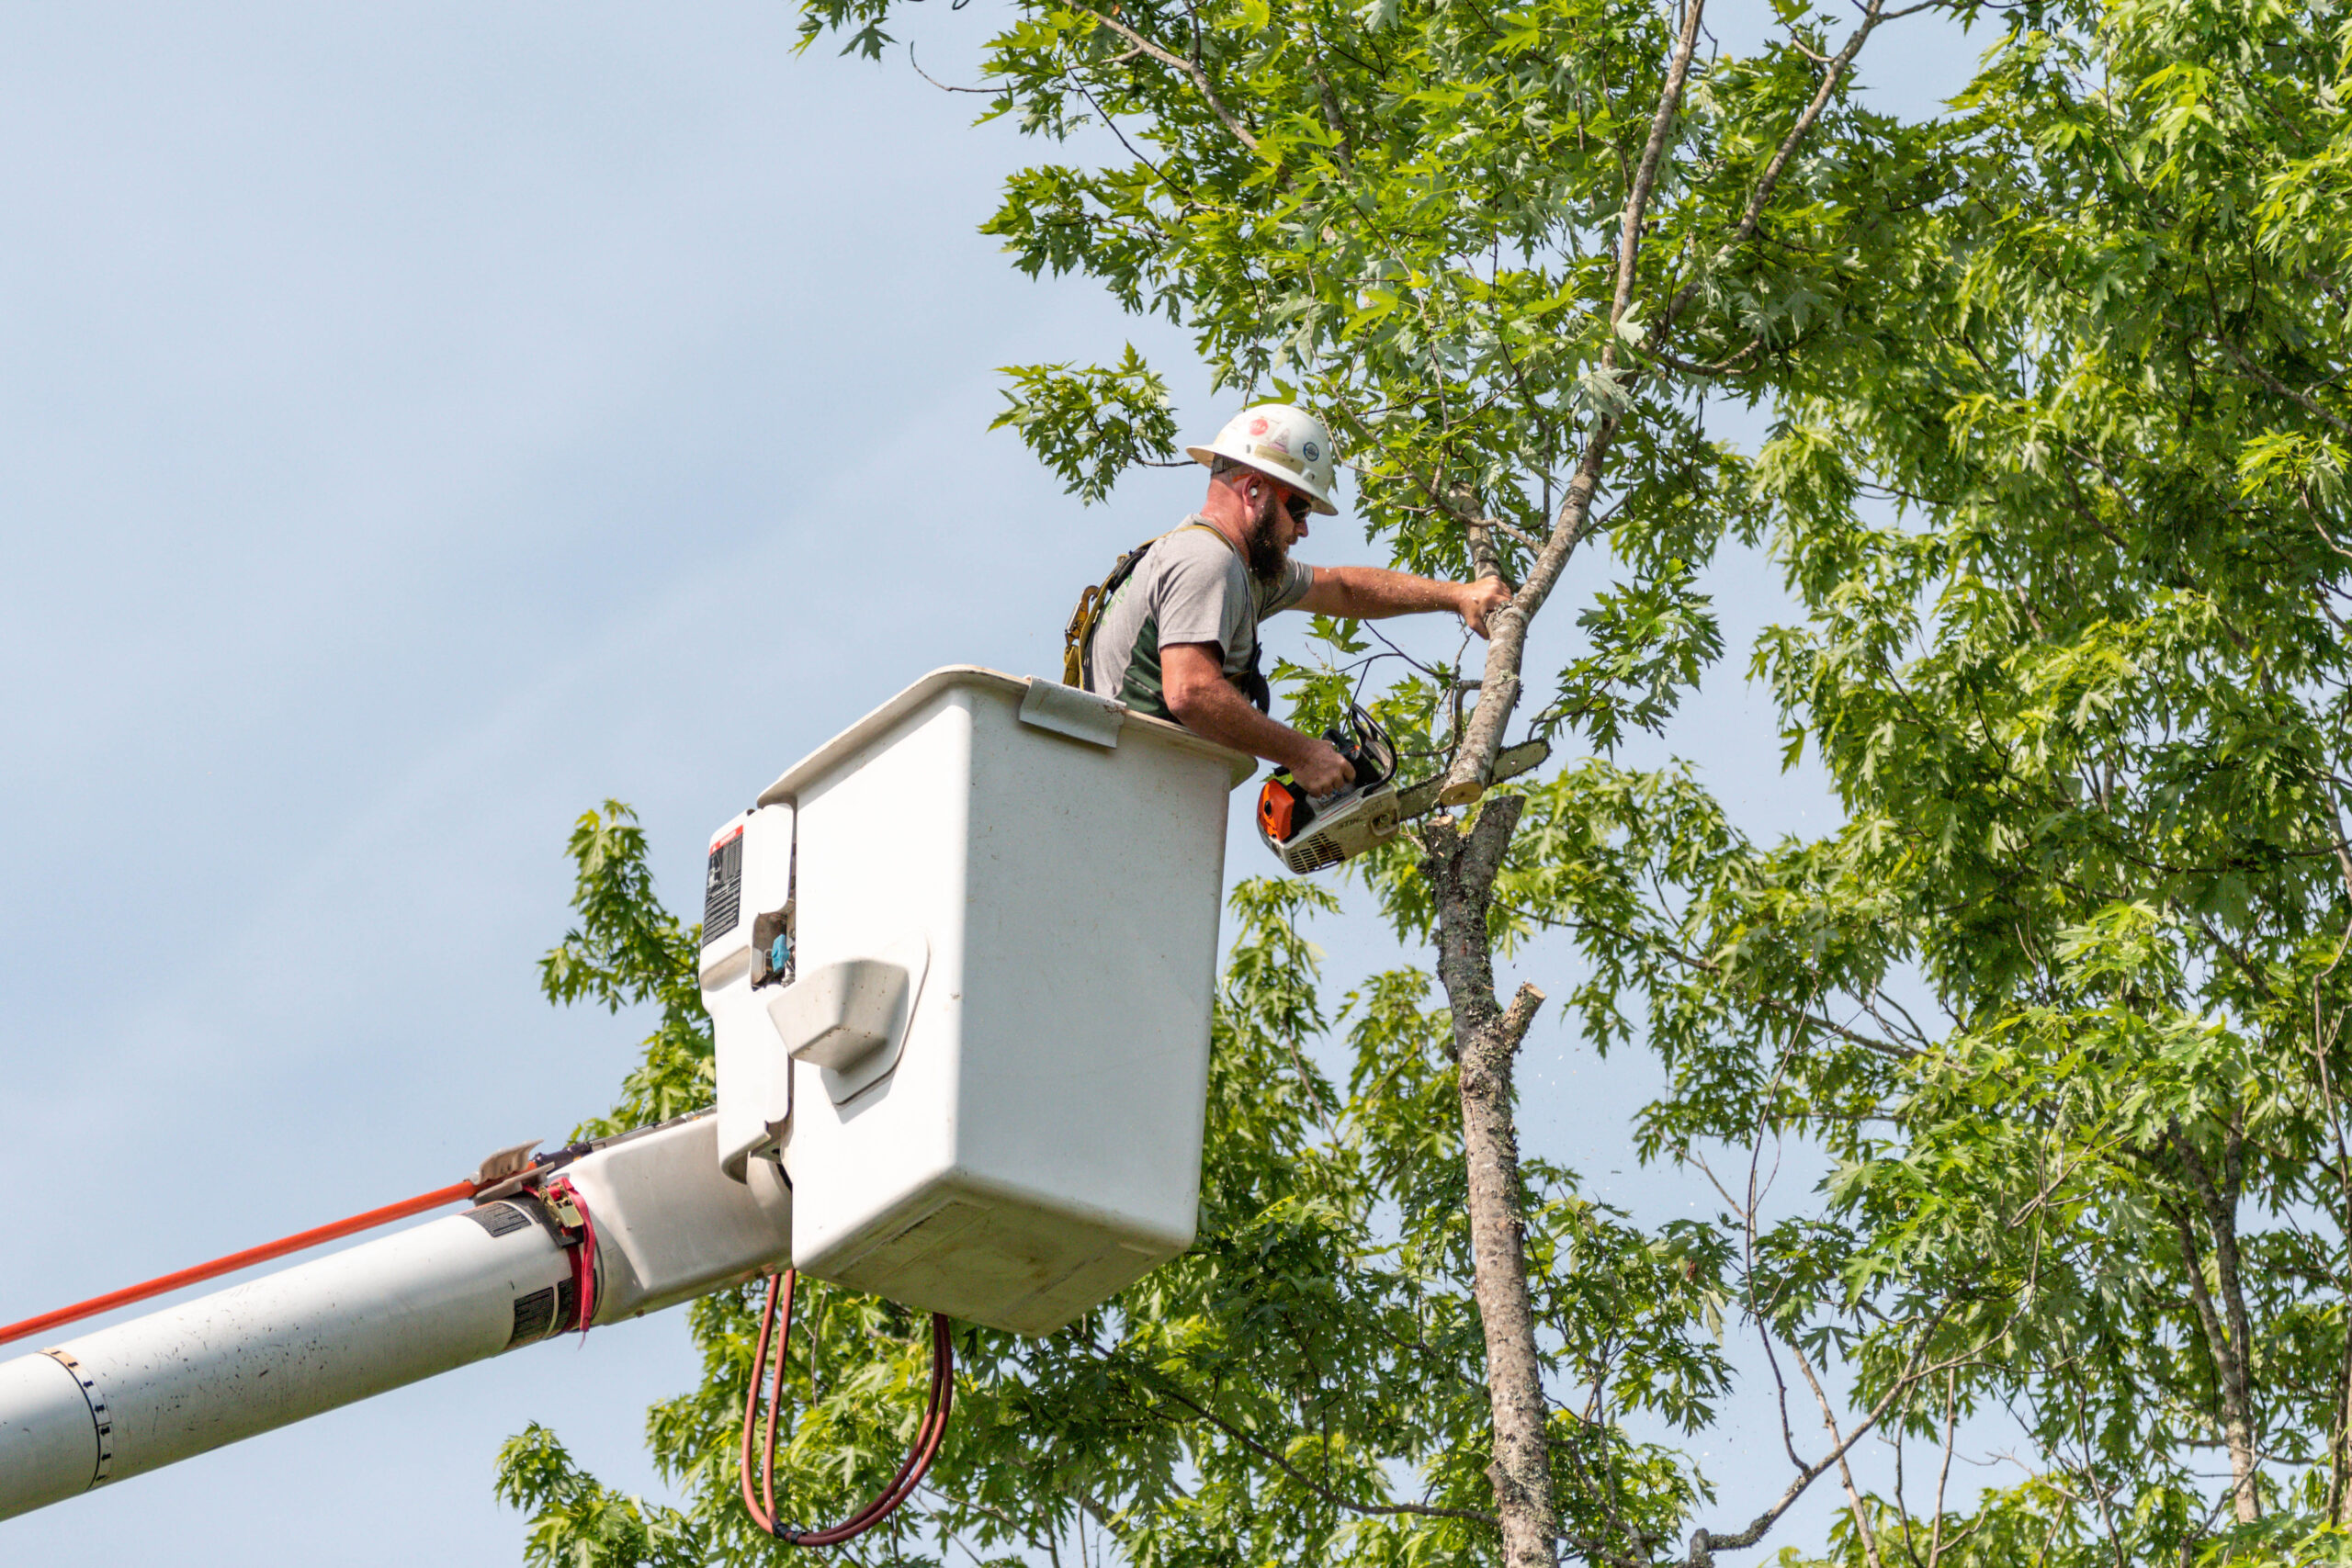 Cutting Off A Branch From A Bucket Truck